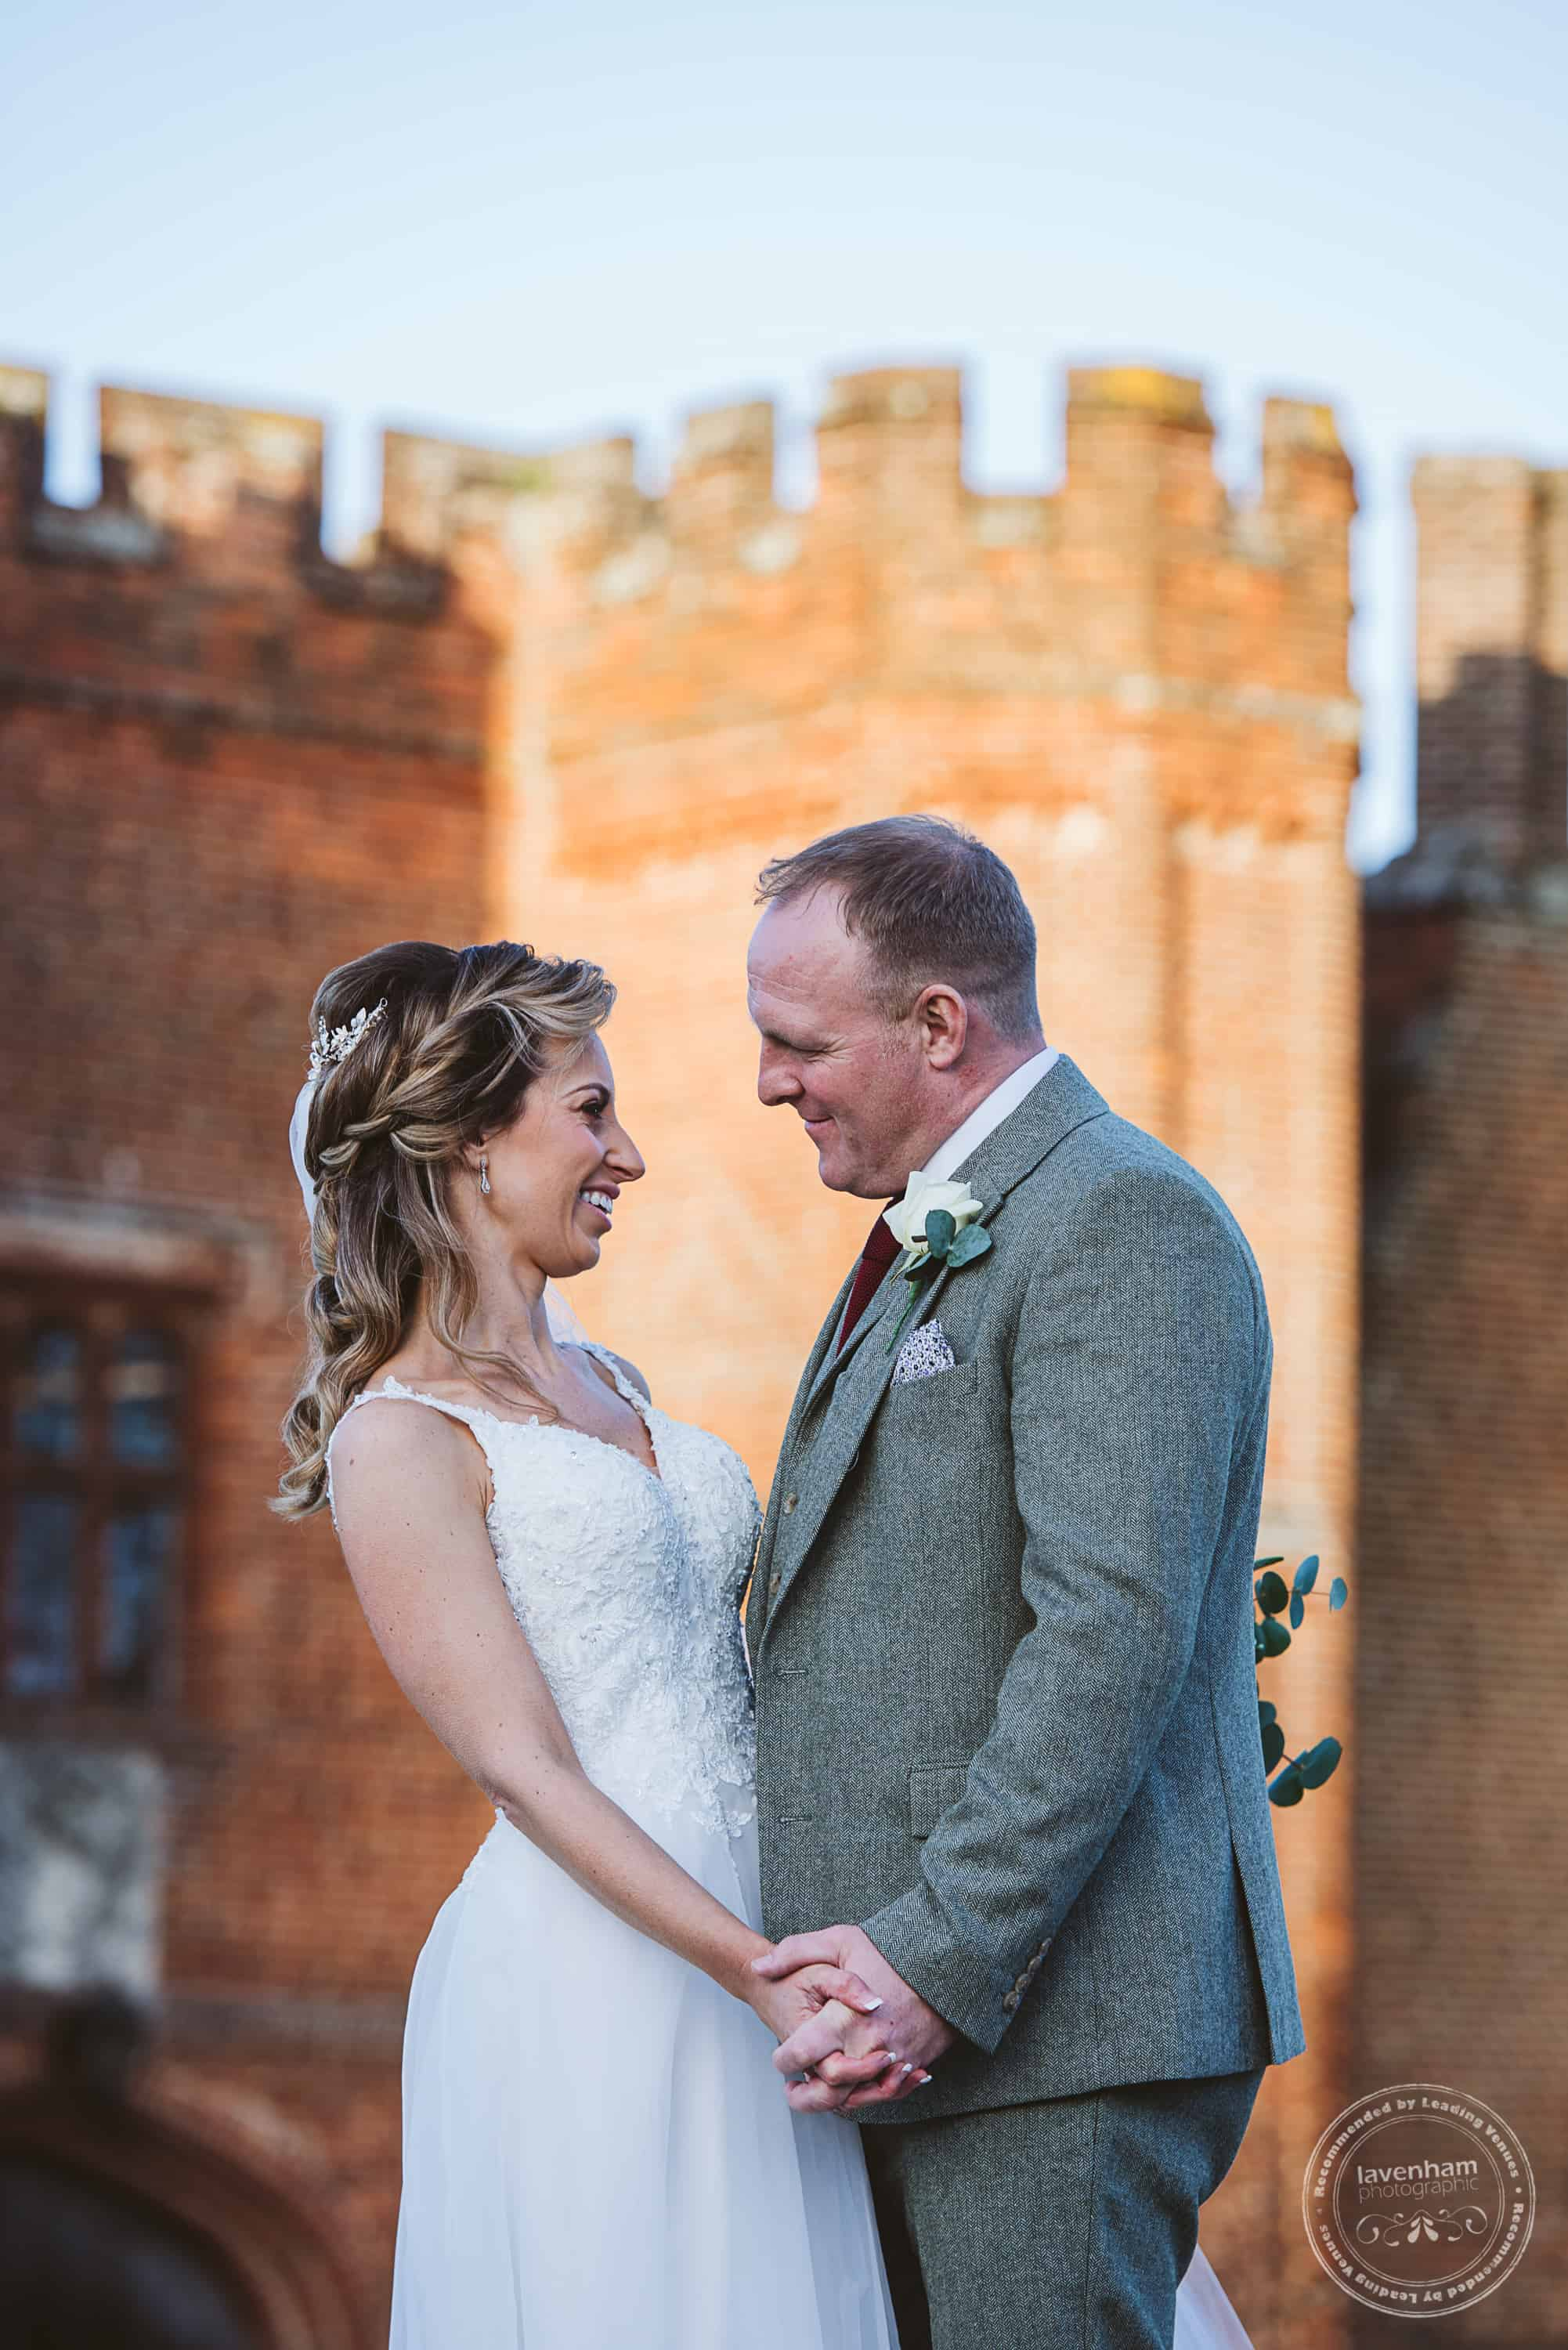 010220 Leez Priory Wedding Photographer 121